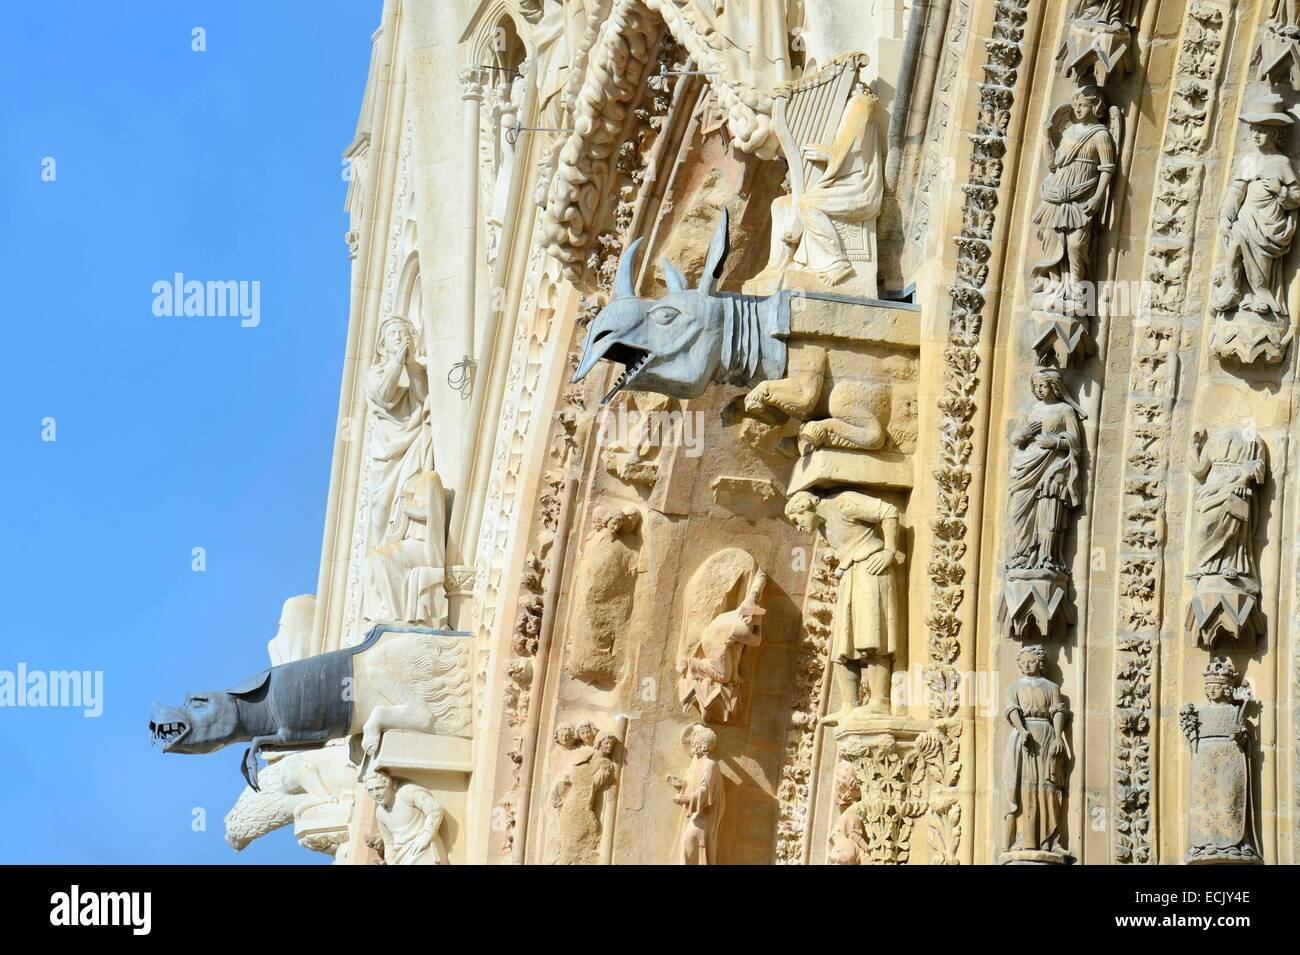 France, Marne, Reims, Notre Dame de Reims cathedral, listed as World Heritage by UNESCO, western façade, lead - Stock Image